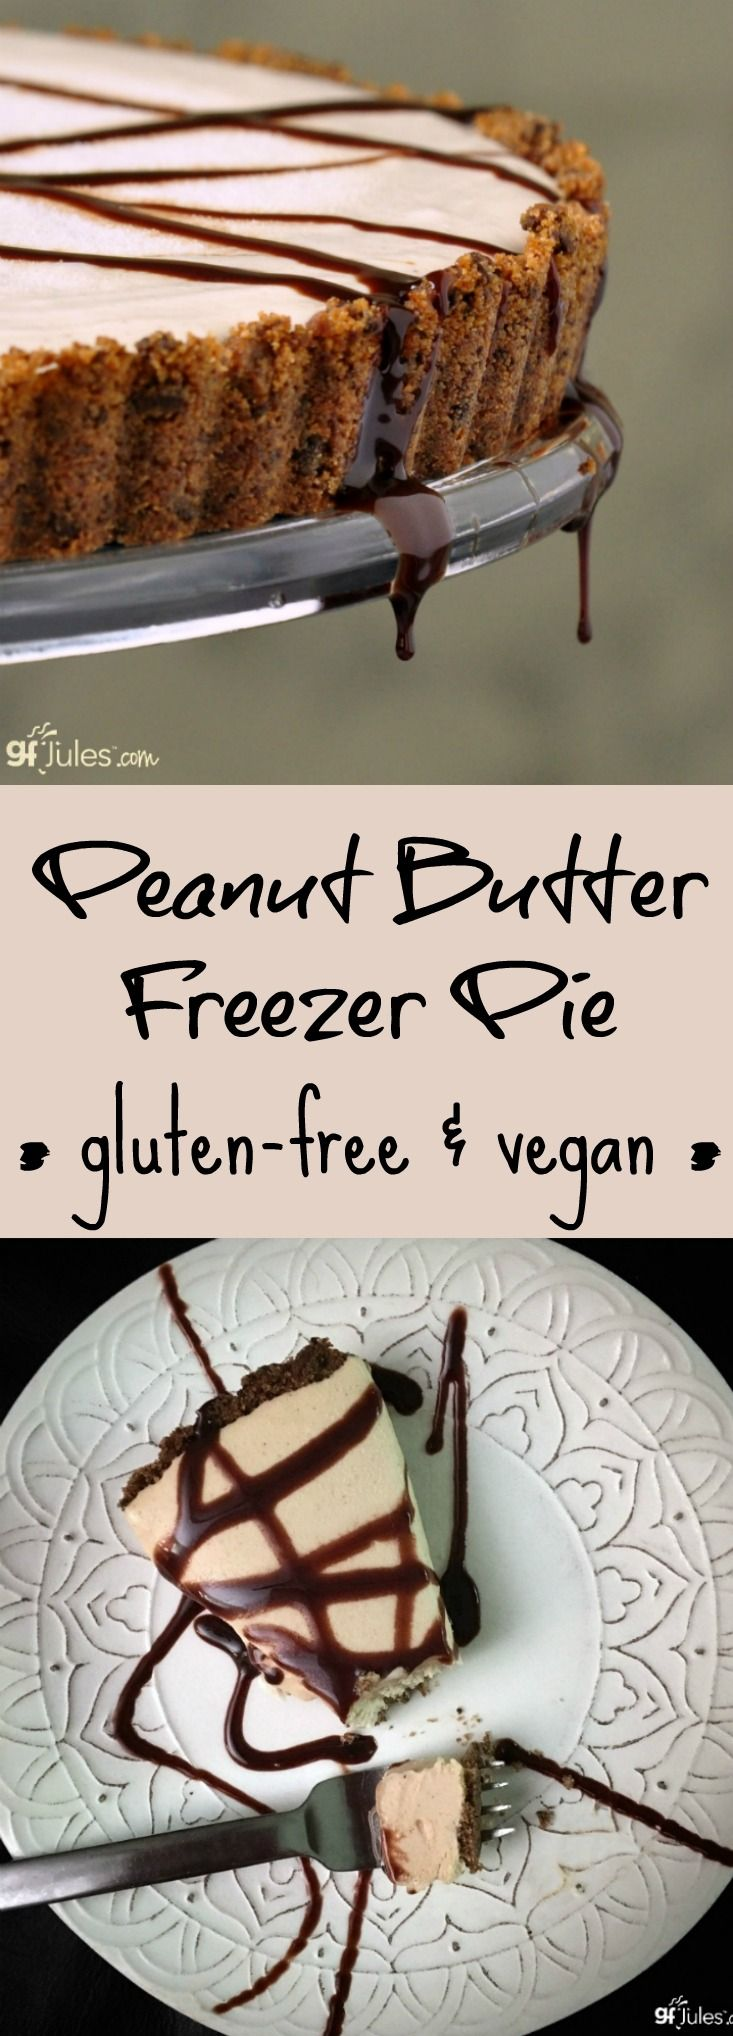 Peanut Butter Freezer Pie. Gluten-Free and Vegan and totally delicious! gfJules